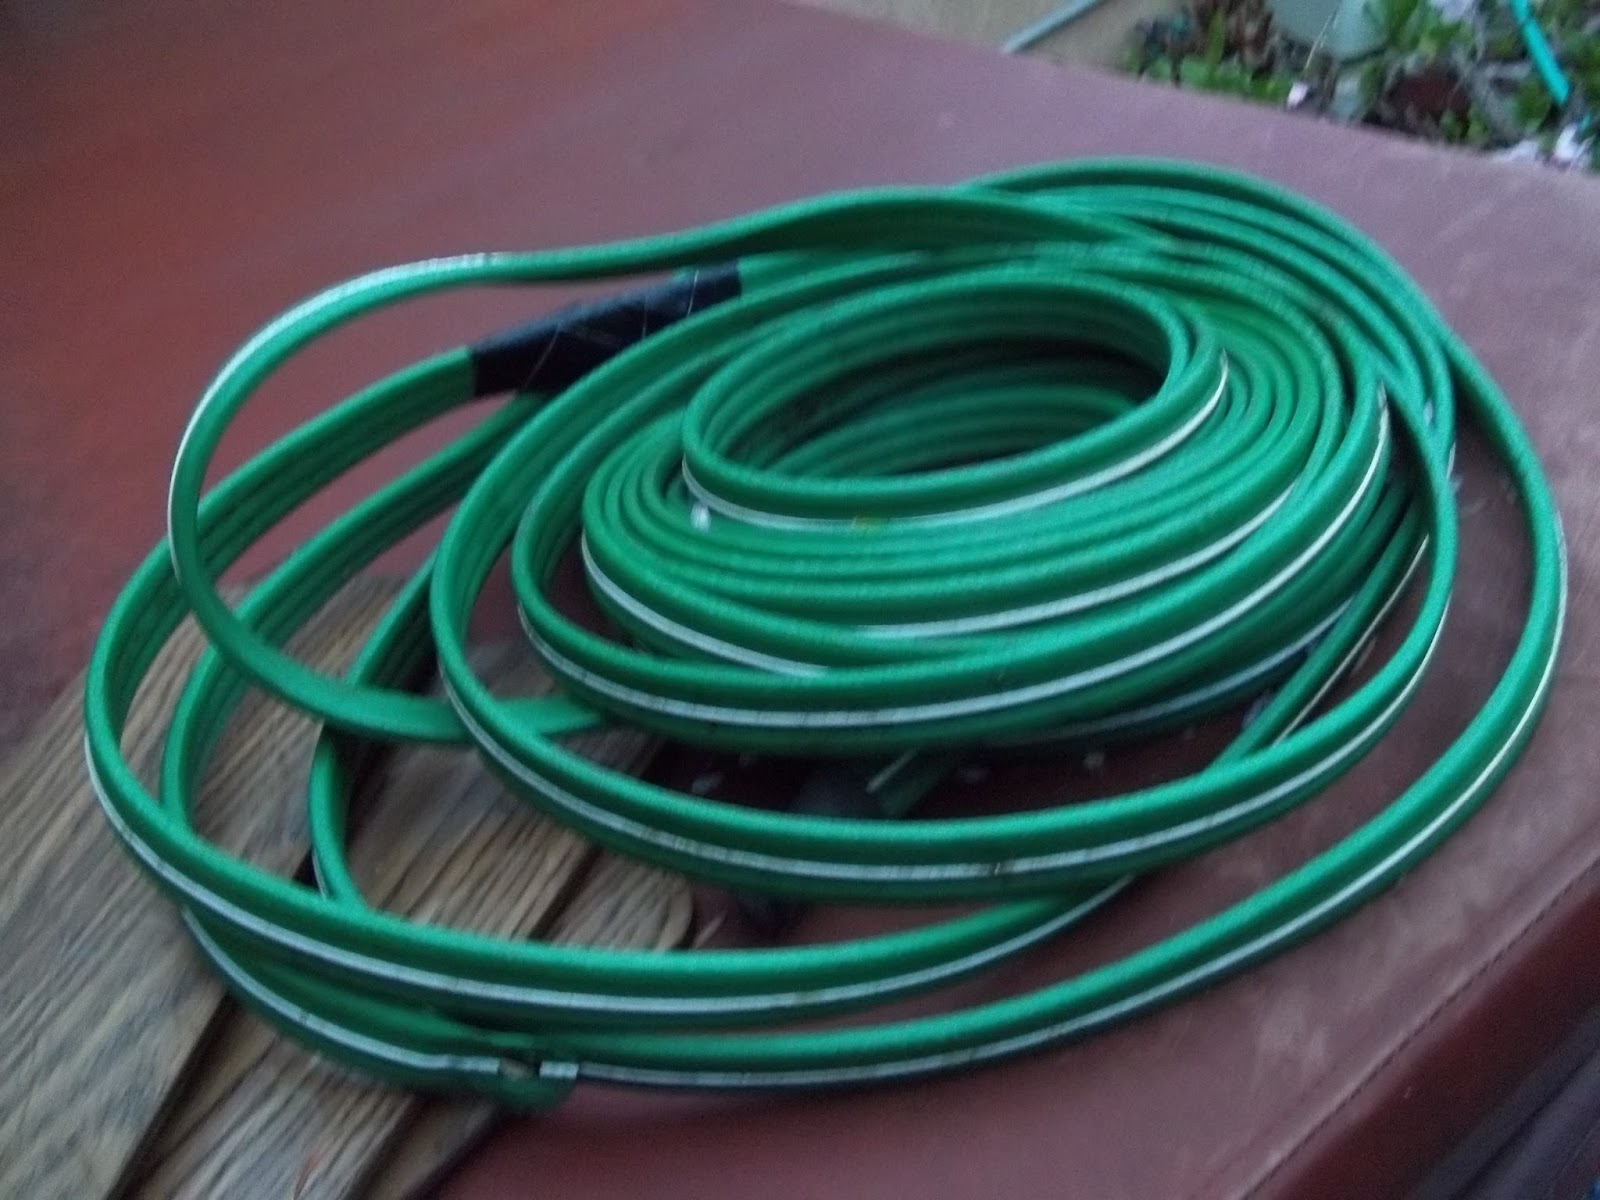 Dragonfly Treasure: Garden Hose Recycle